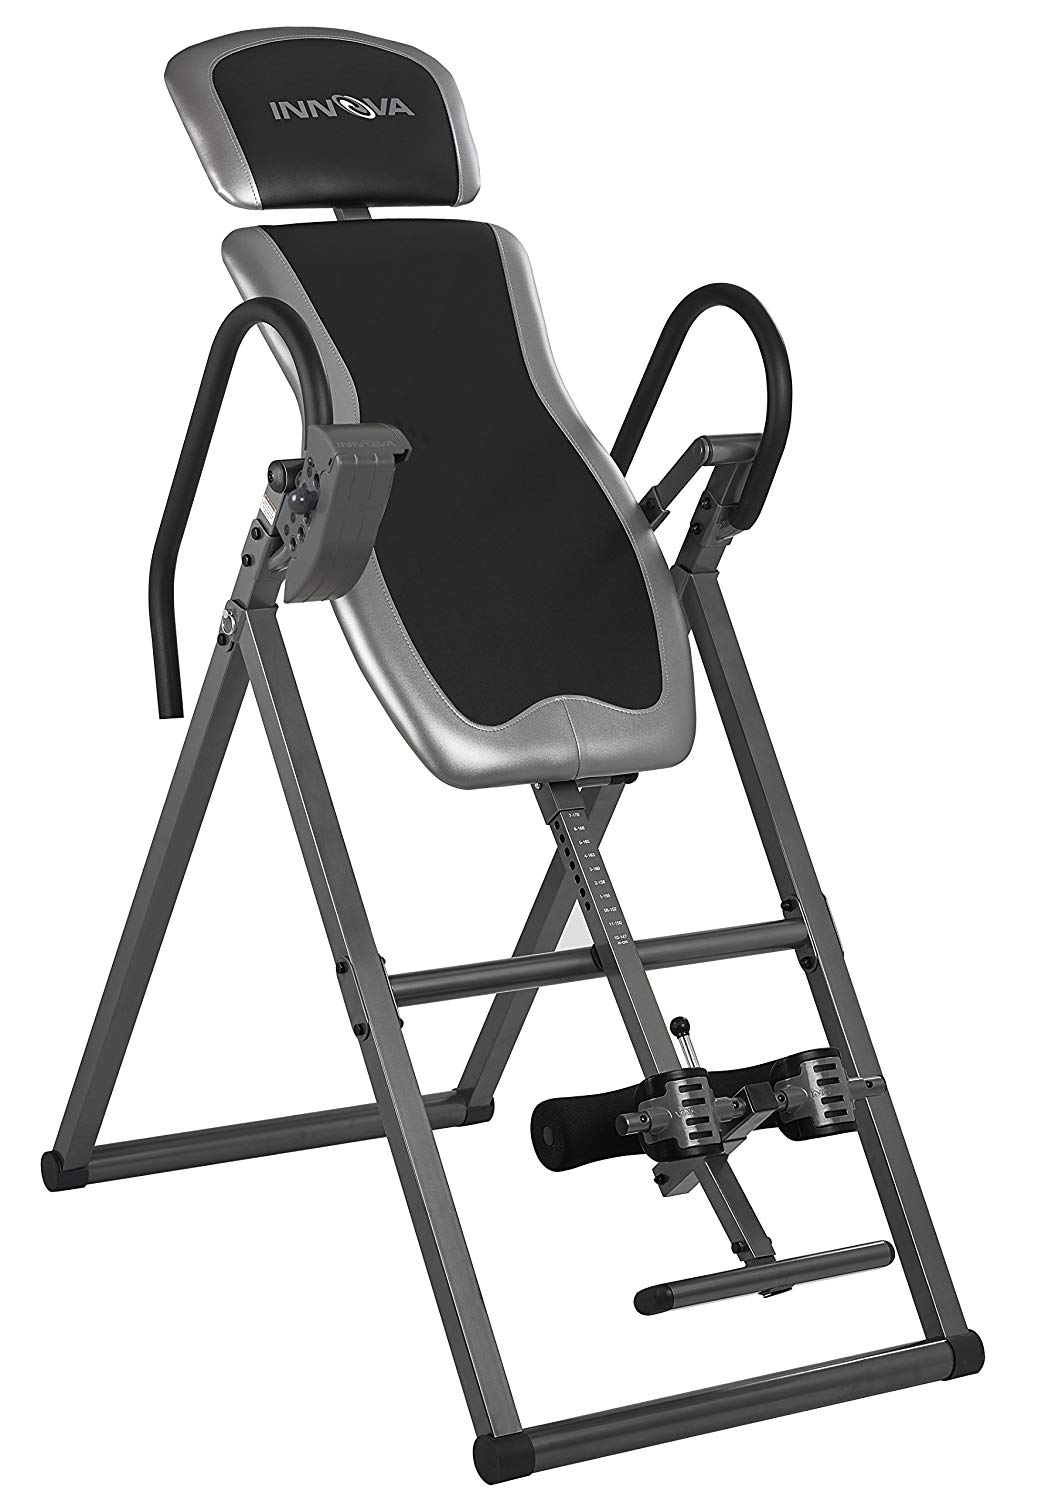 Innova ITX 9600 Inversion Table